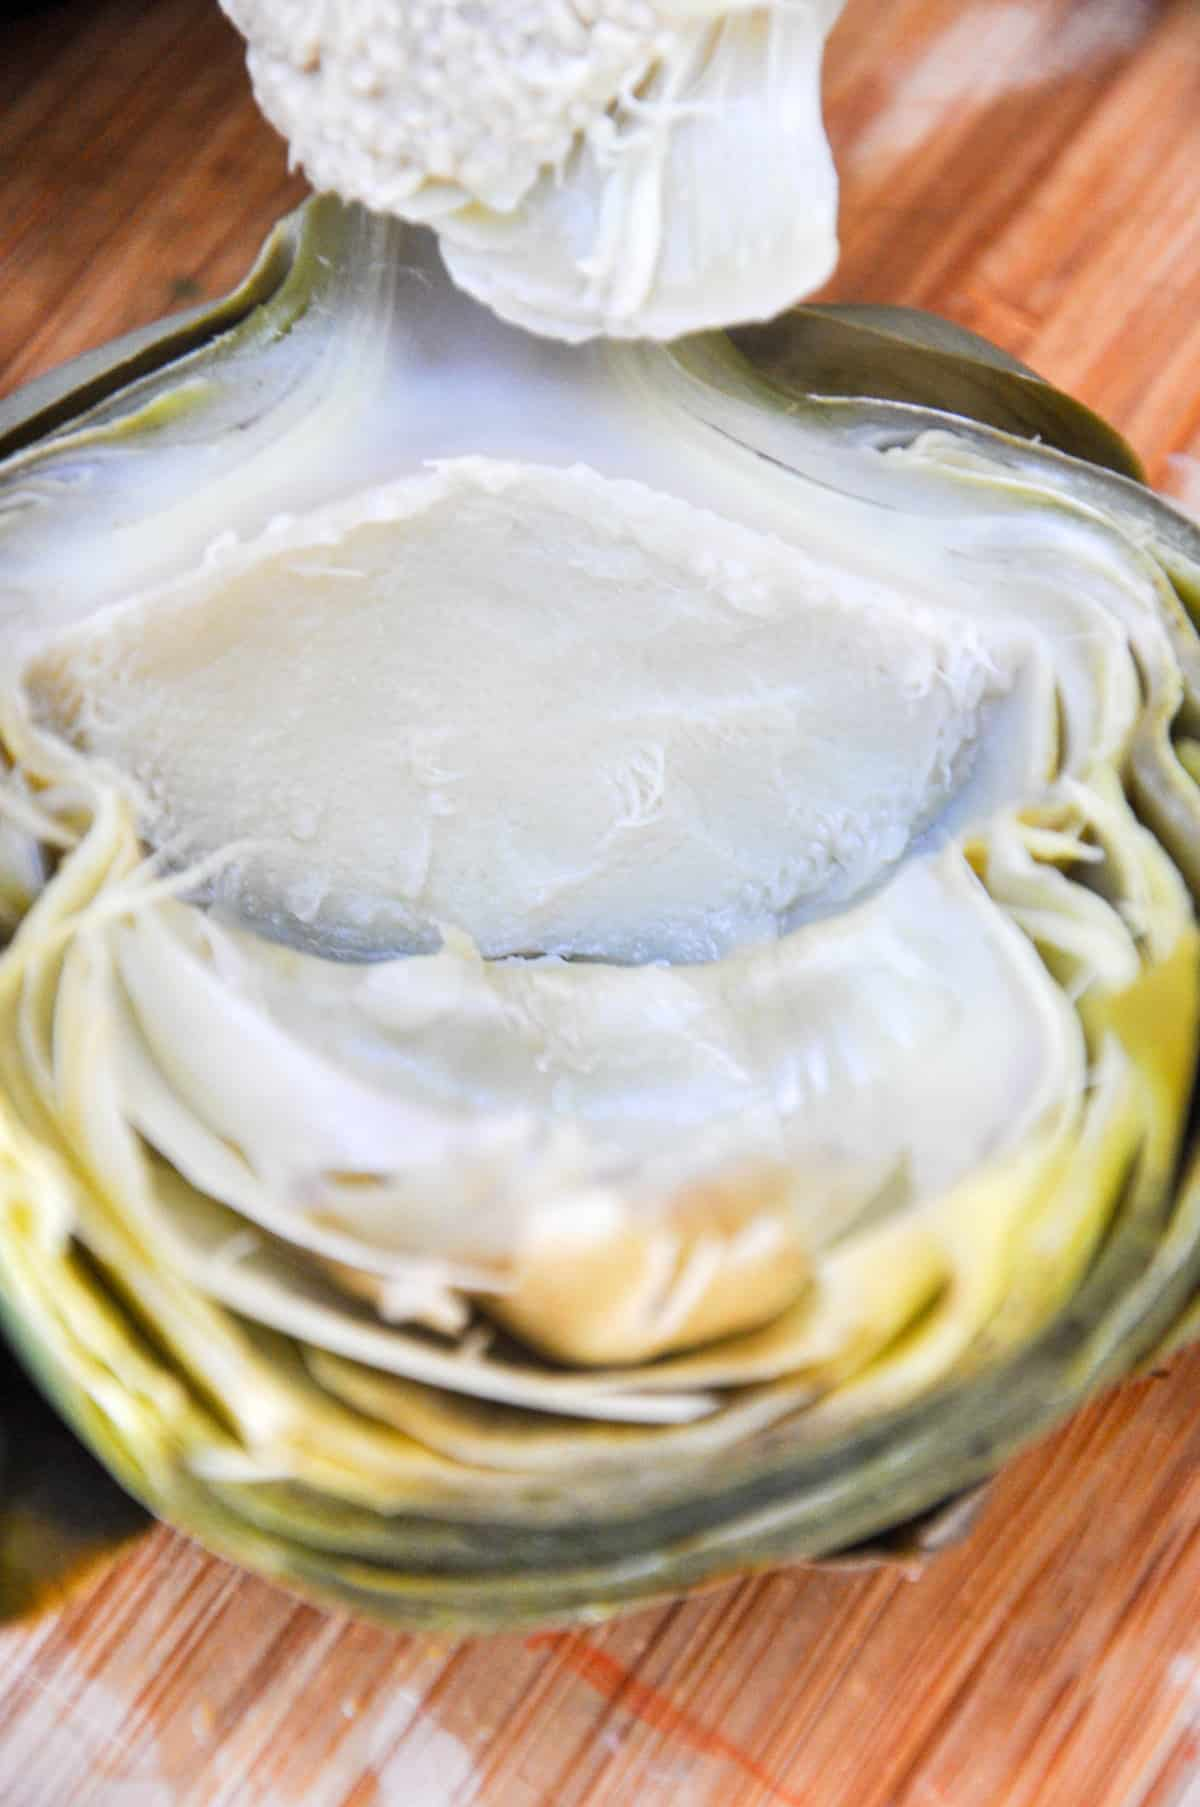 Remove flesh of artichoke with spoon